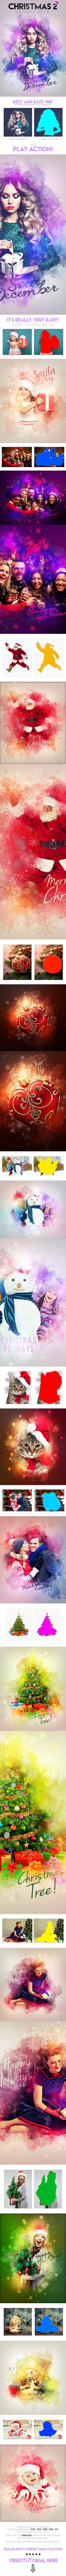 Christmas 2 Photoshop Action #photoeffect Download: http://graphicriver.net/item/christmas-2-photoshop-action-/13813427?ref=ksioks